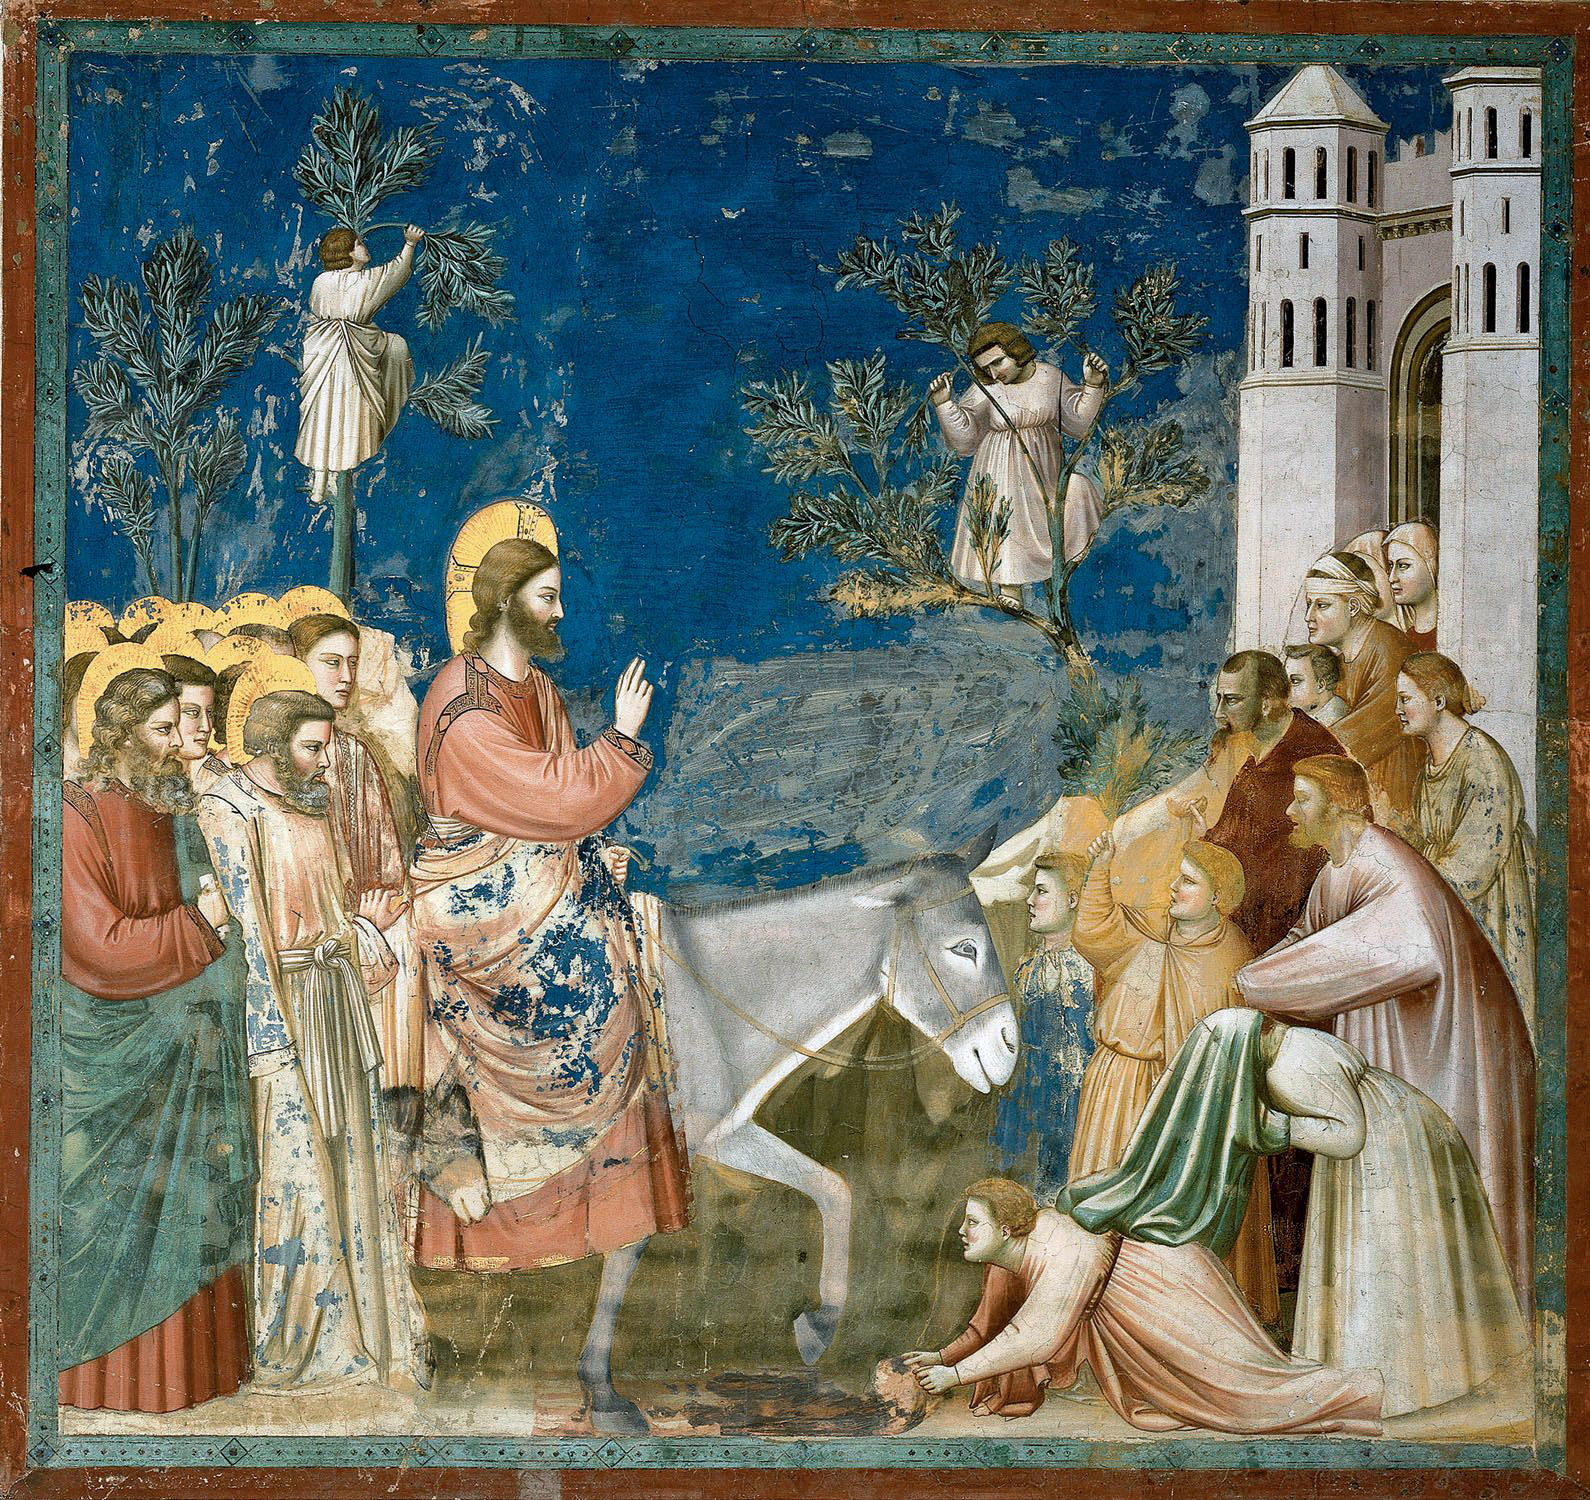 The Entry into Jerusalem, 14th century painting by Giotto (c.1267-1337).